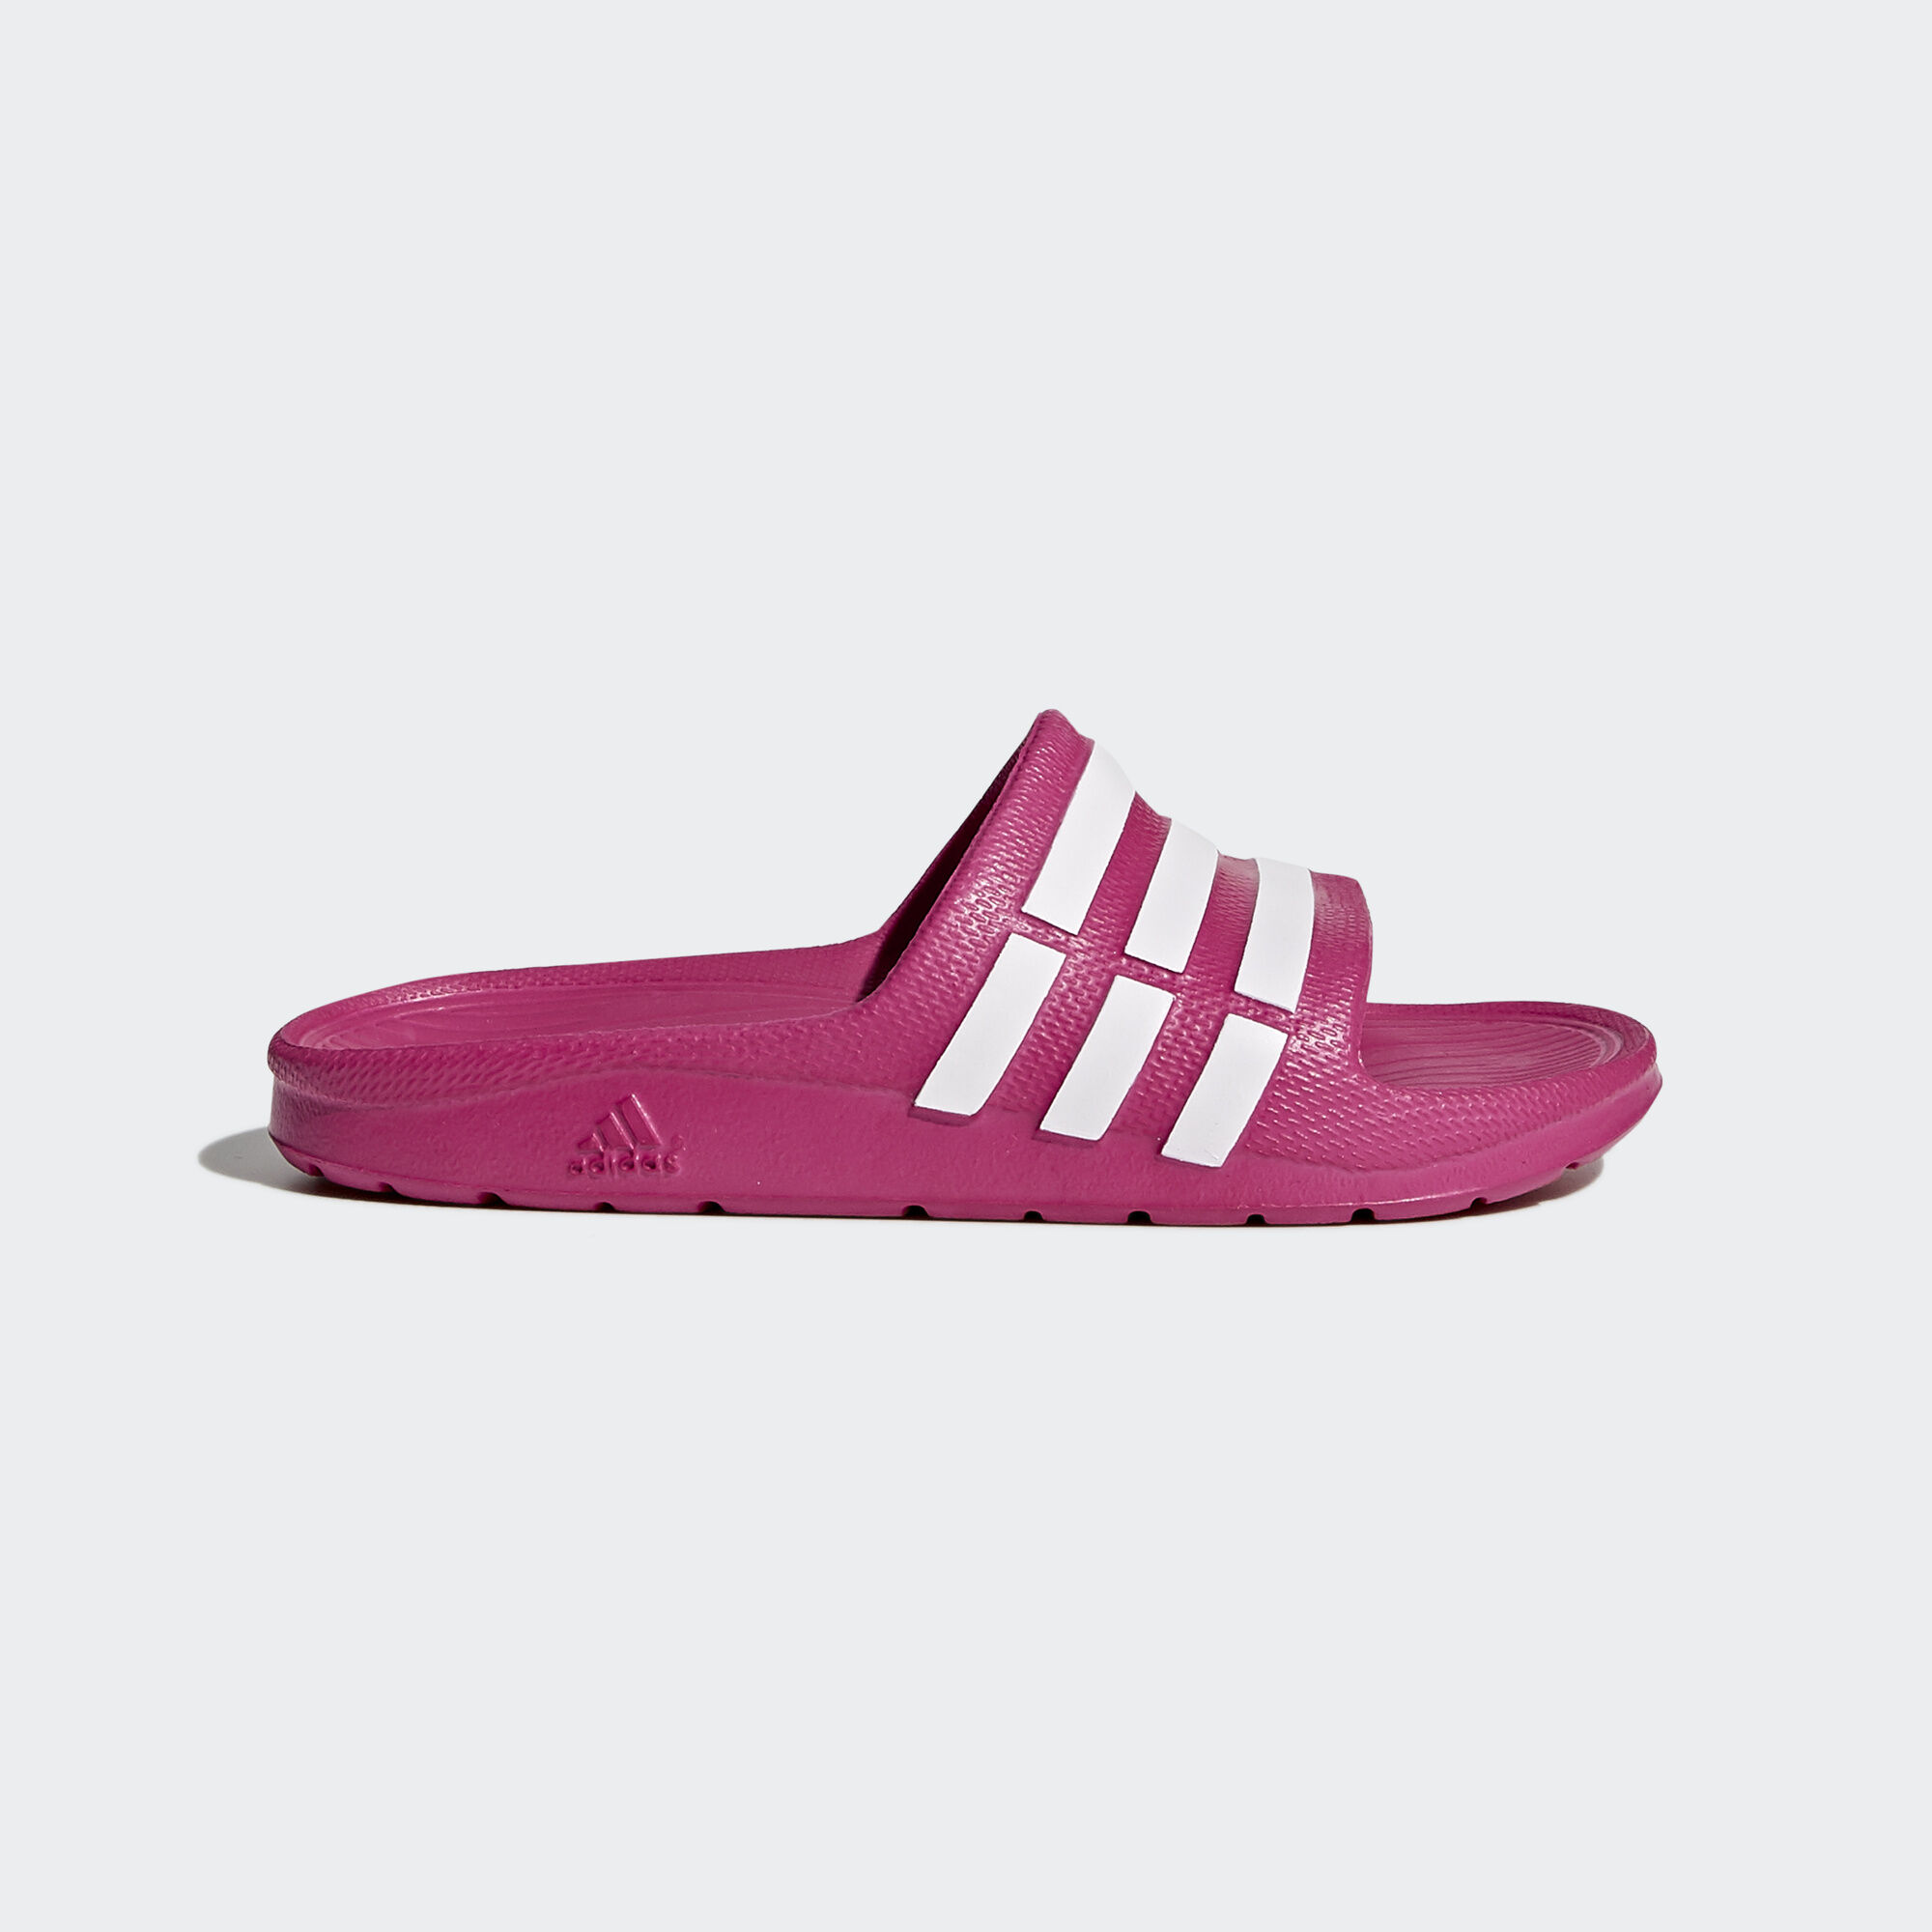 cheaper 96e94 92739 Buy adidas duramo slide pink,up to 52% Discounts.